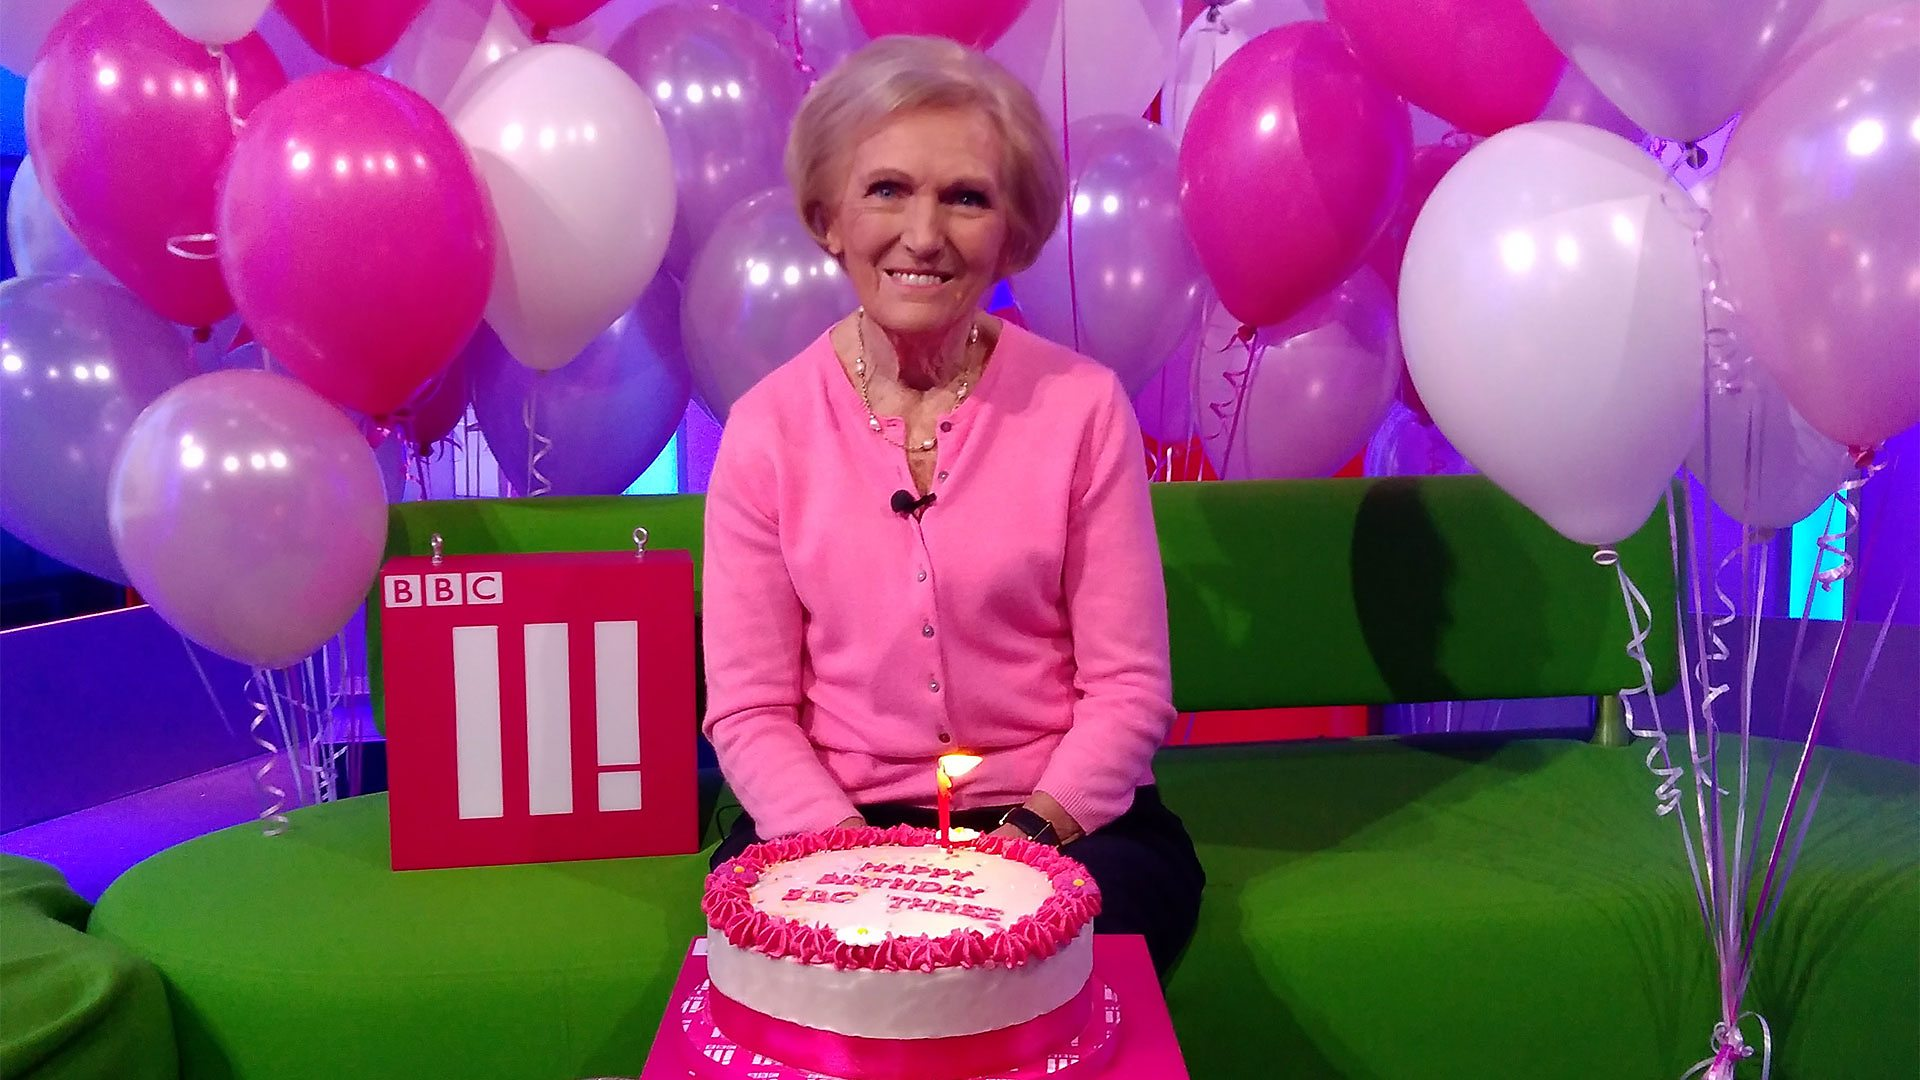 Bbc Three Videos From Bbc Three Mary Berry Just Salt Baed